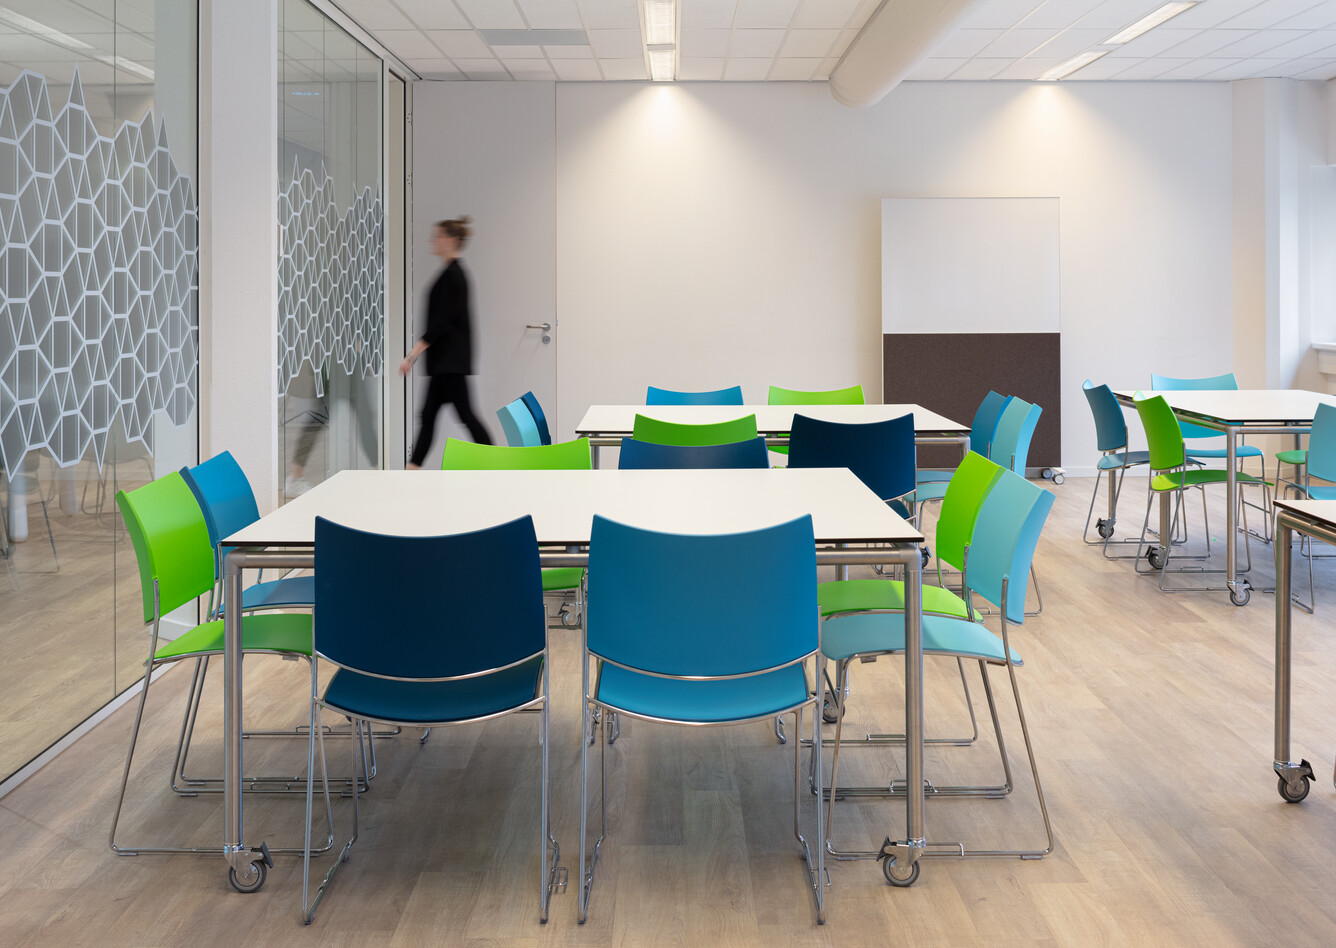 Royal Ahrend education project Avans University of Applied Sciences in Roosendaal 17